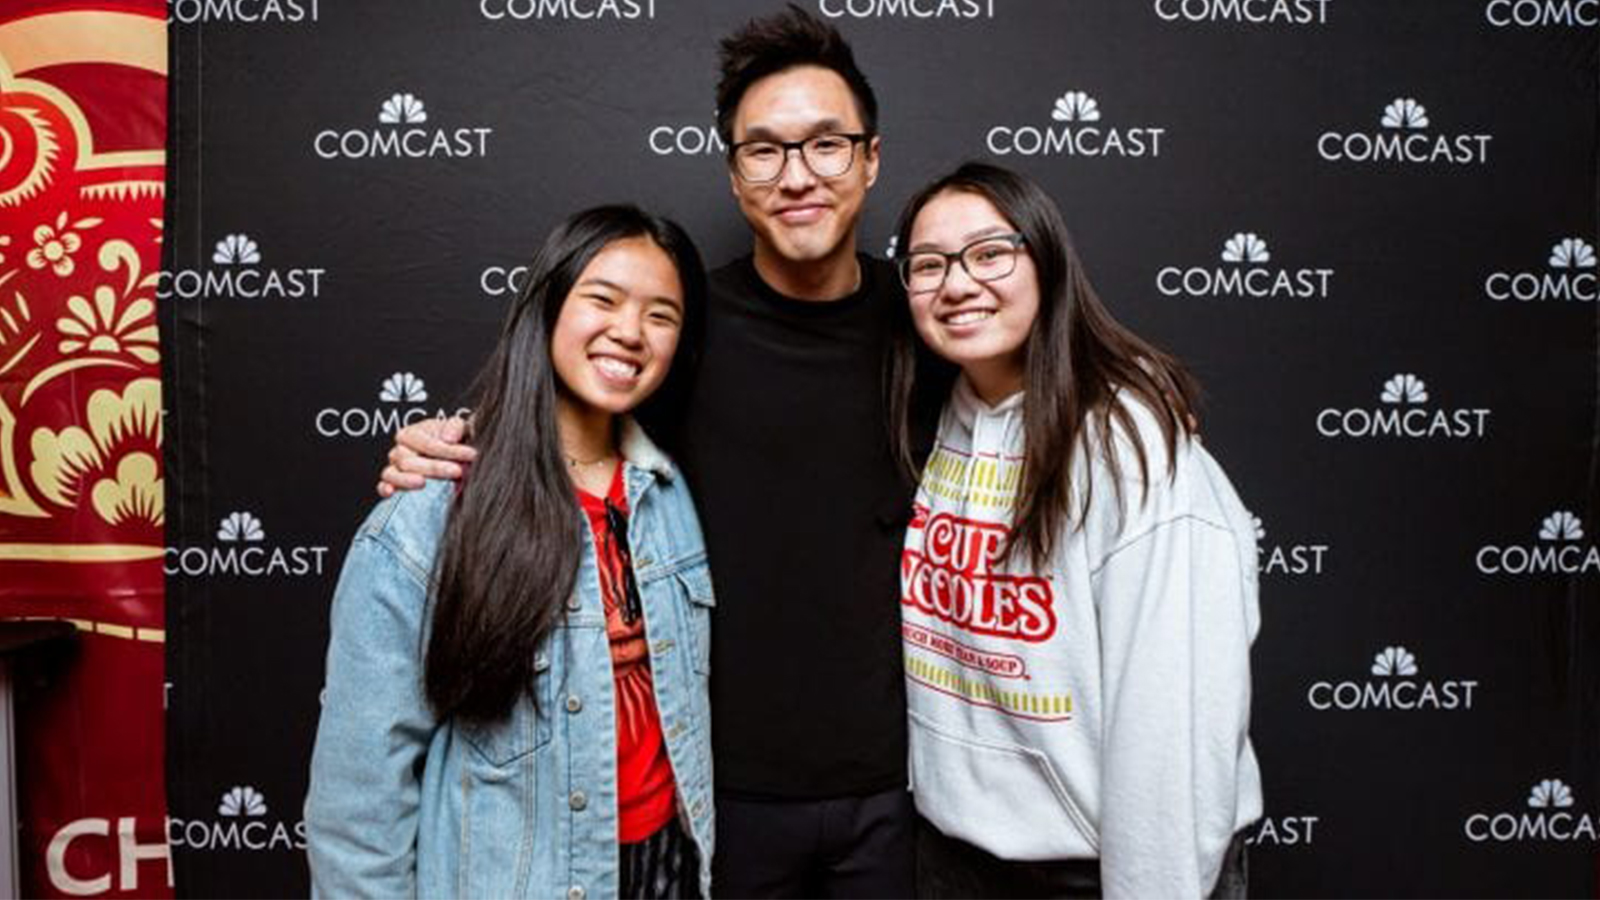 Wesley Chan in front of a Comcast branded backdrop with fans.